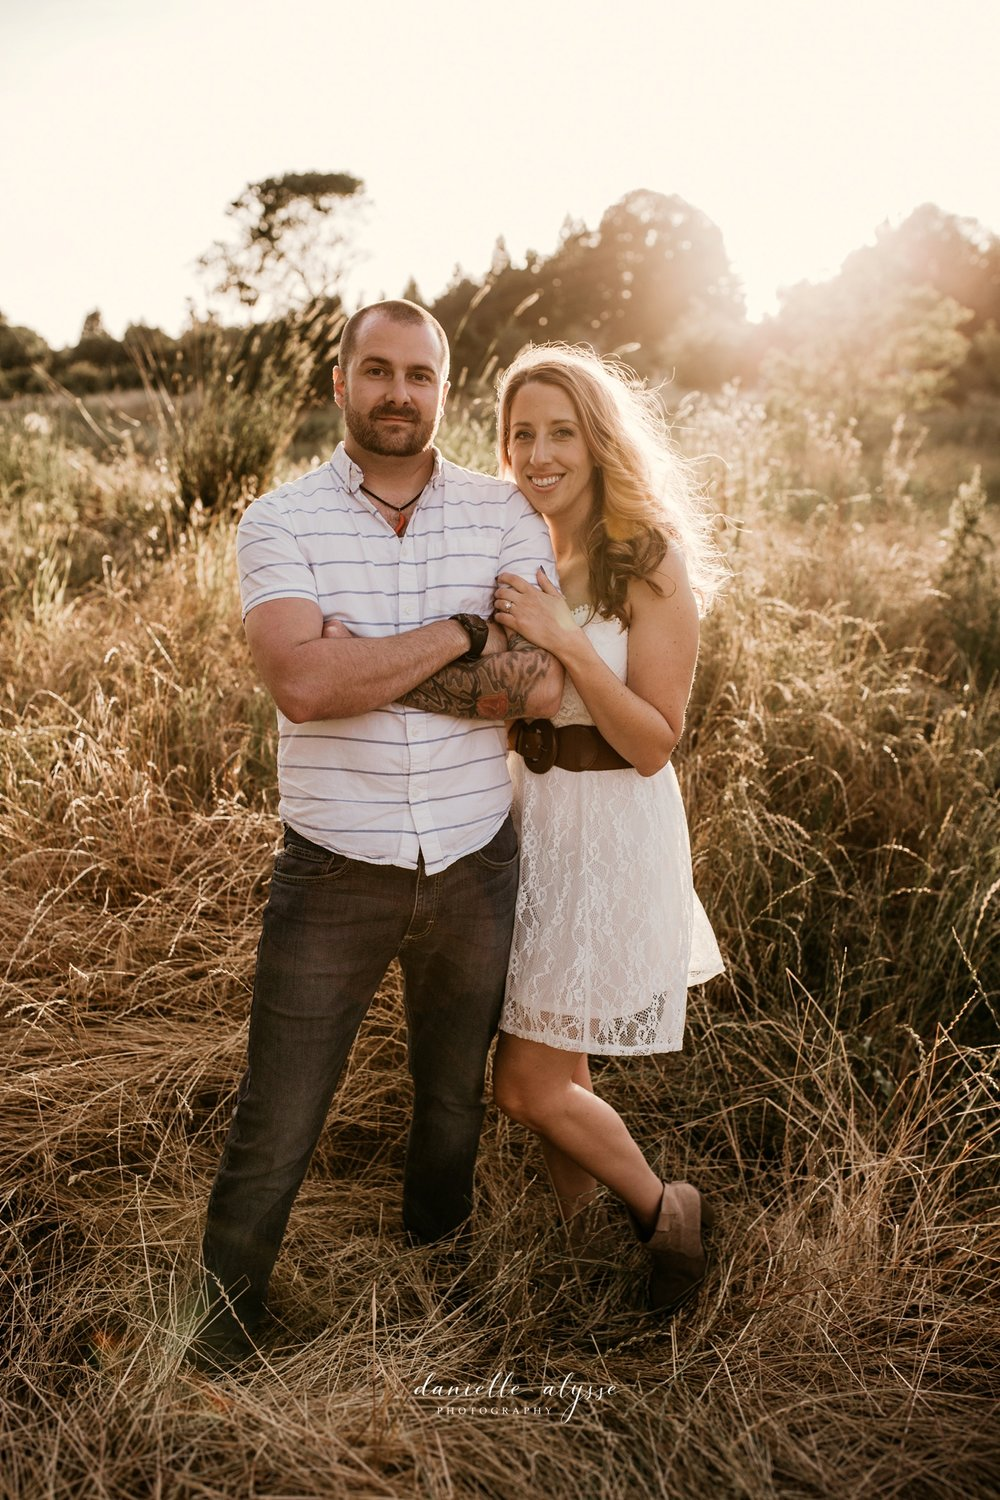 180520_engagement_sarah_jon_dogs_danielle_alysse_photography_elk_grove_photographer_blog_43_WEB.jpg